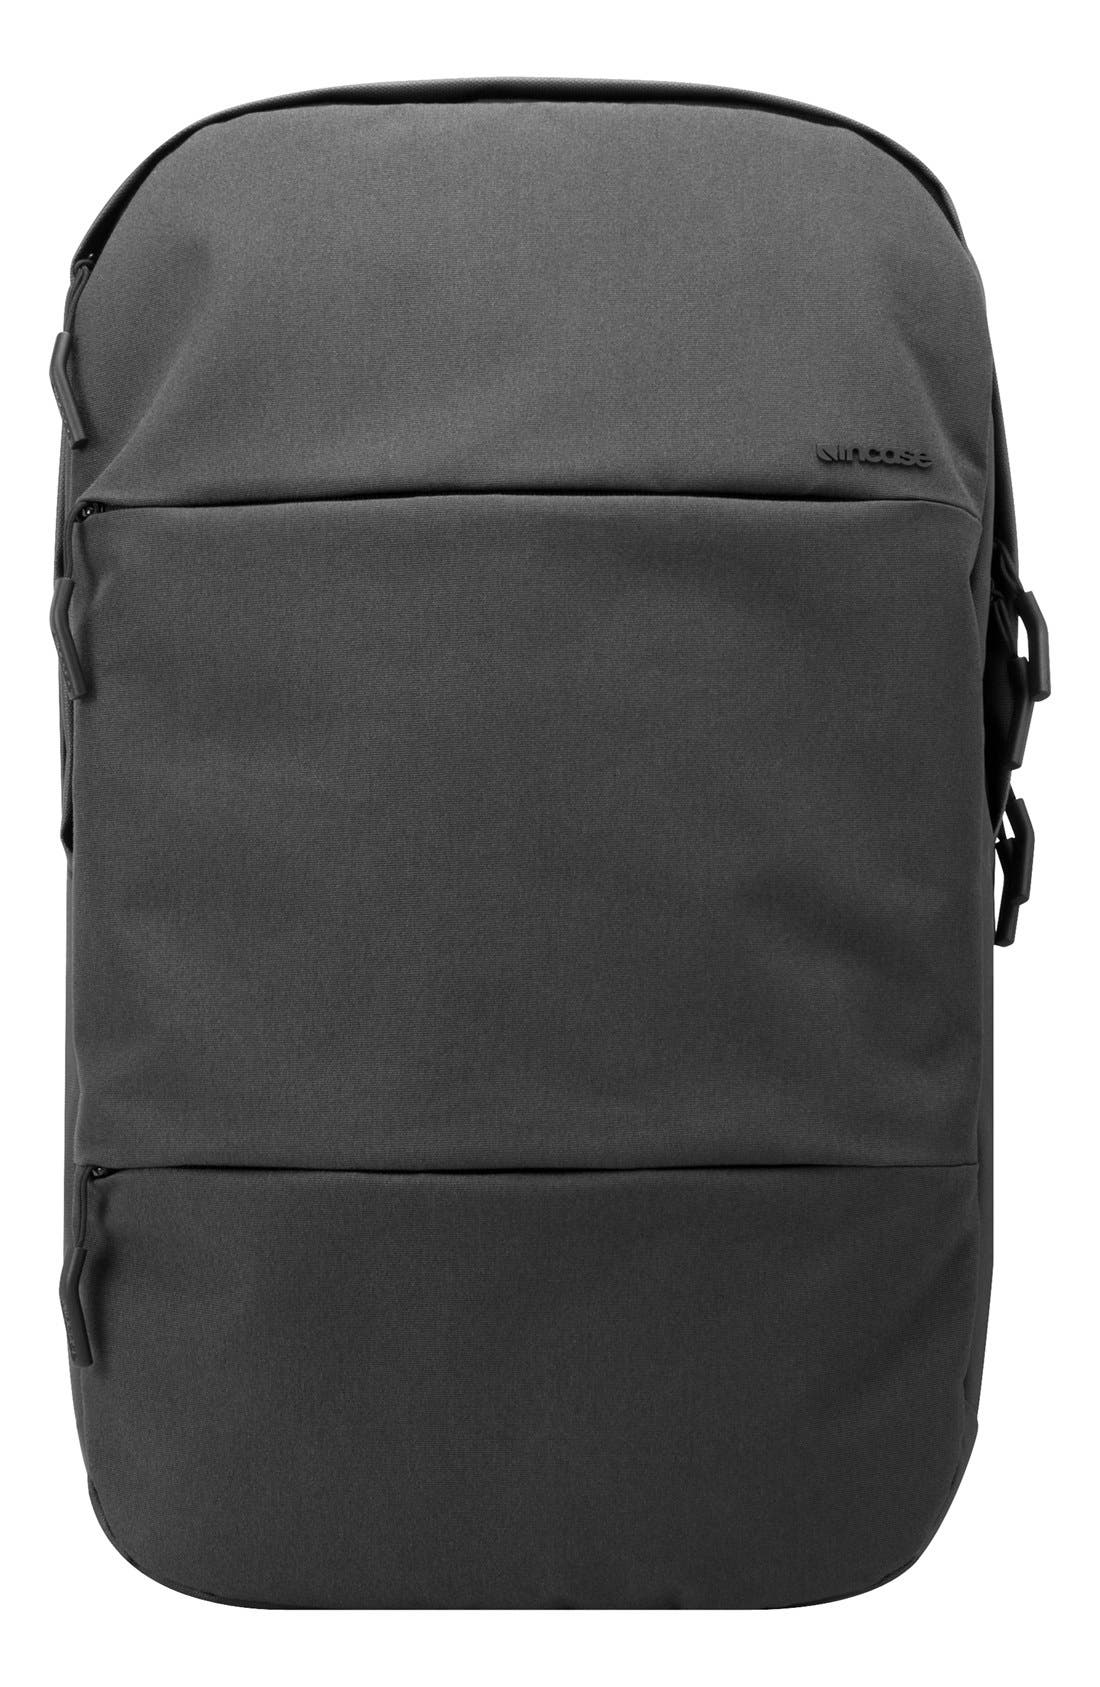 Main Image - Incase Designs City Collection Backpack